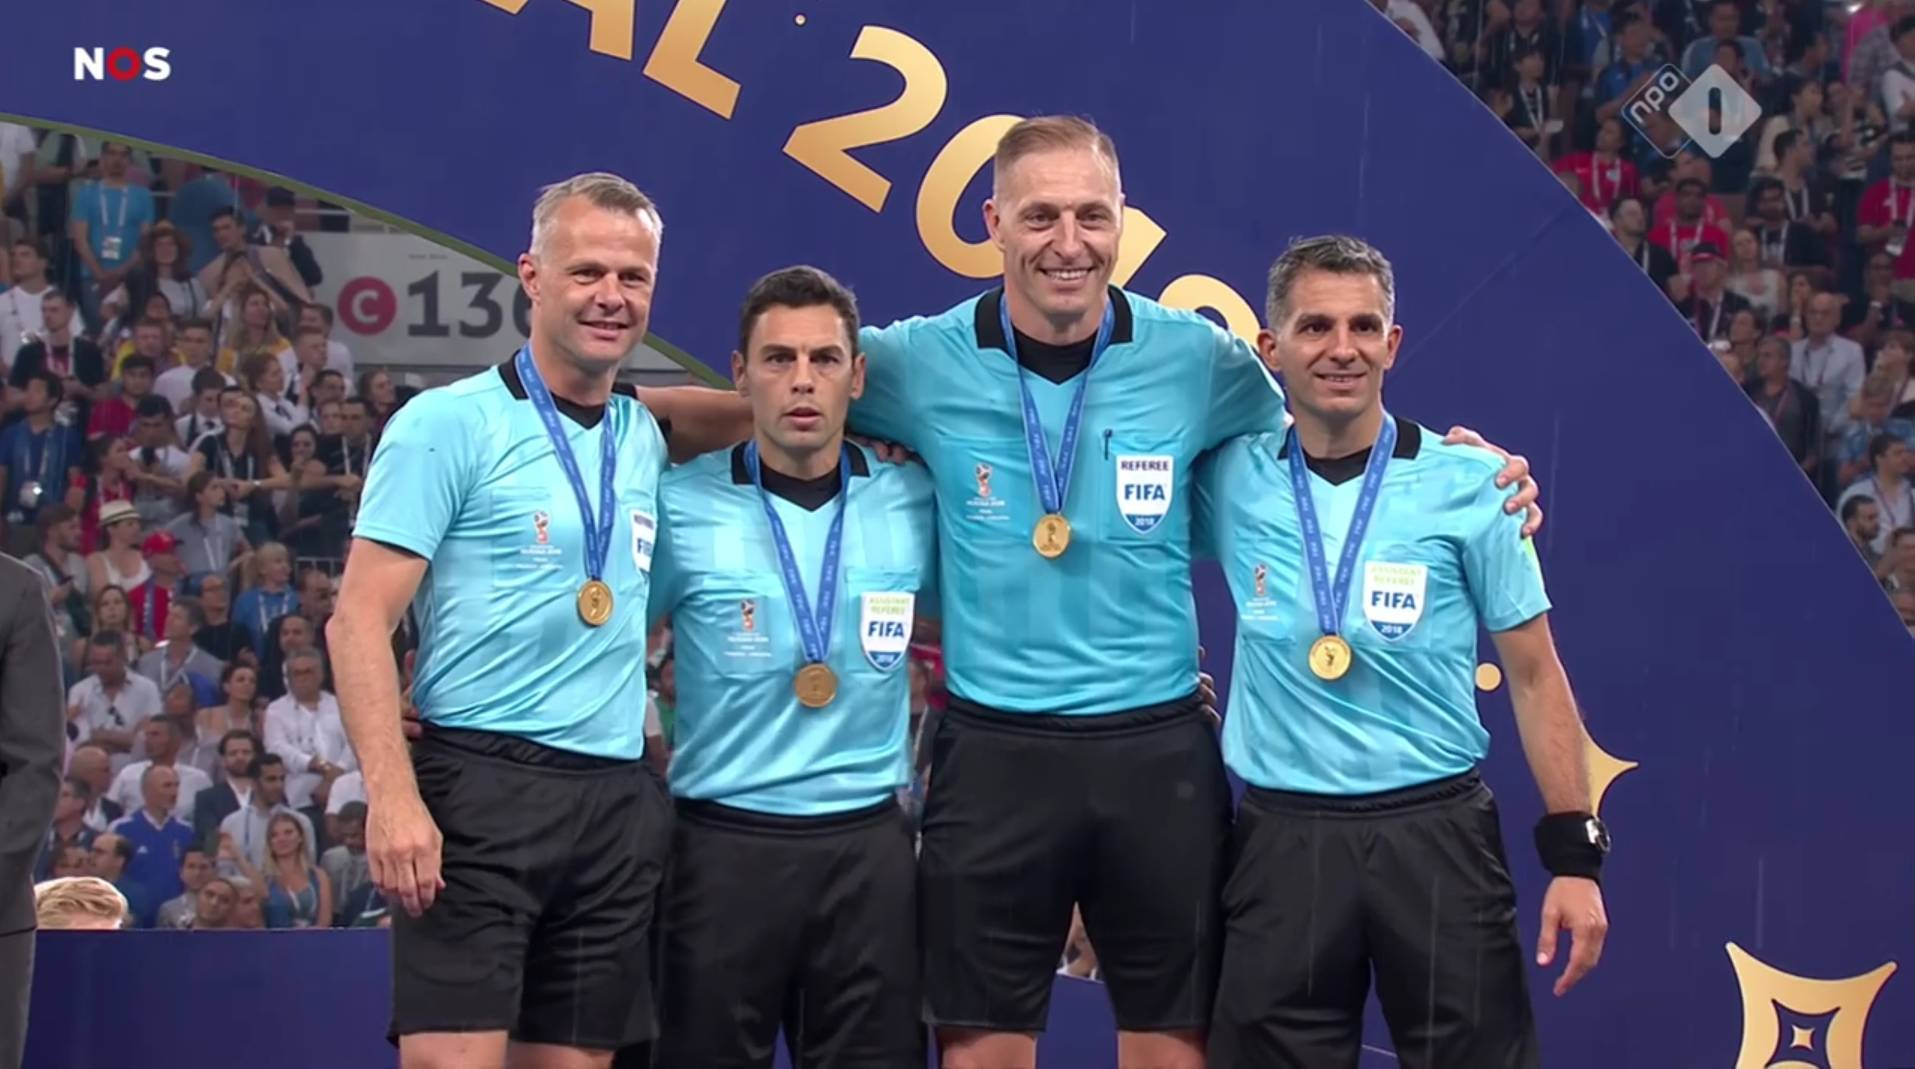 World Cup final referees and medals